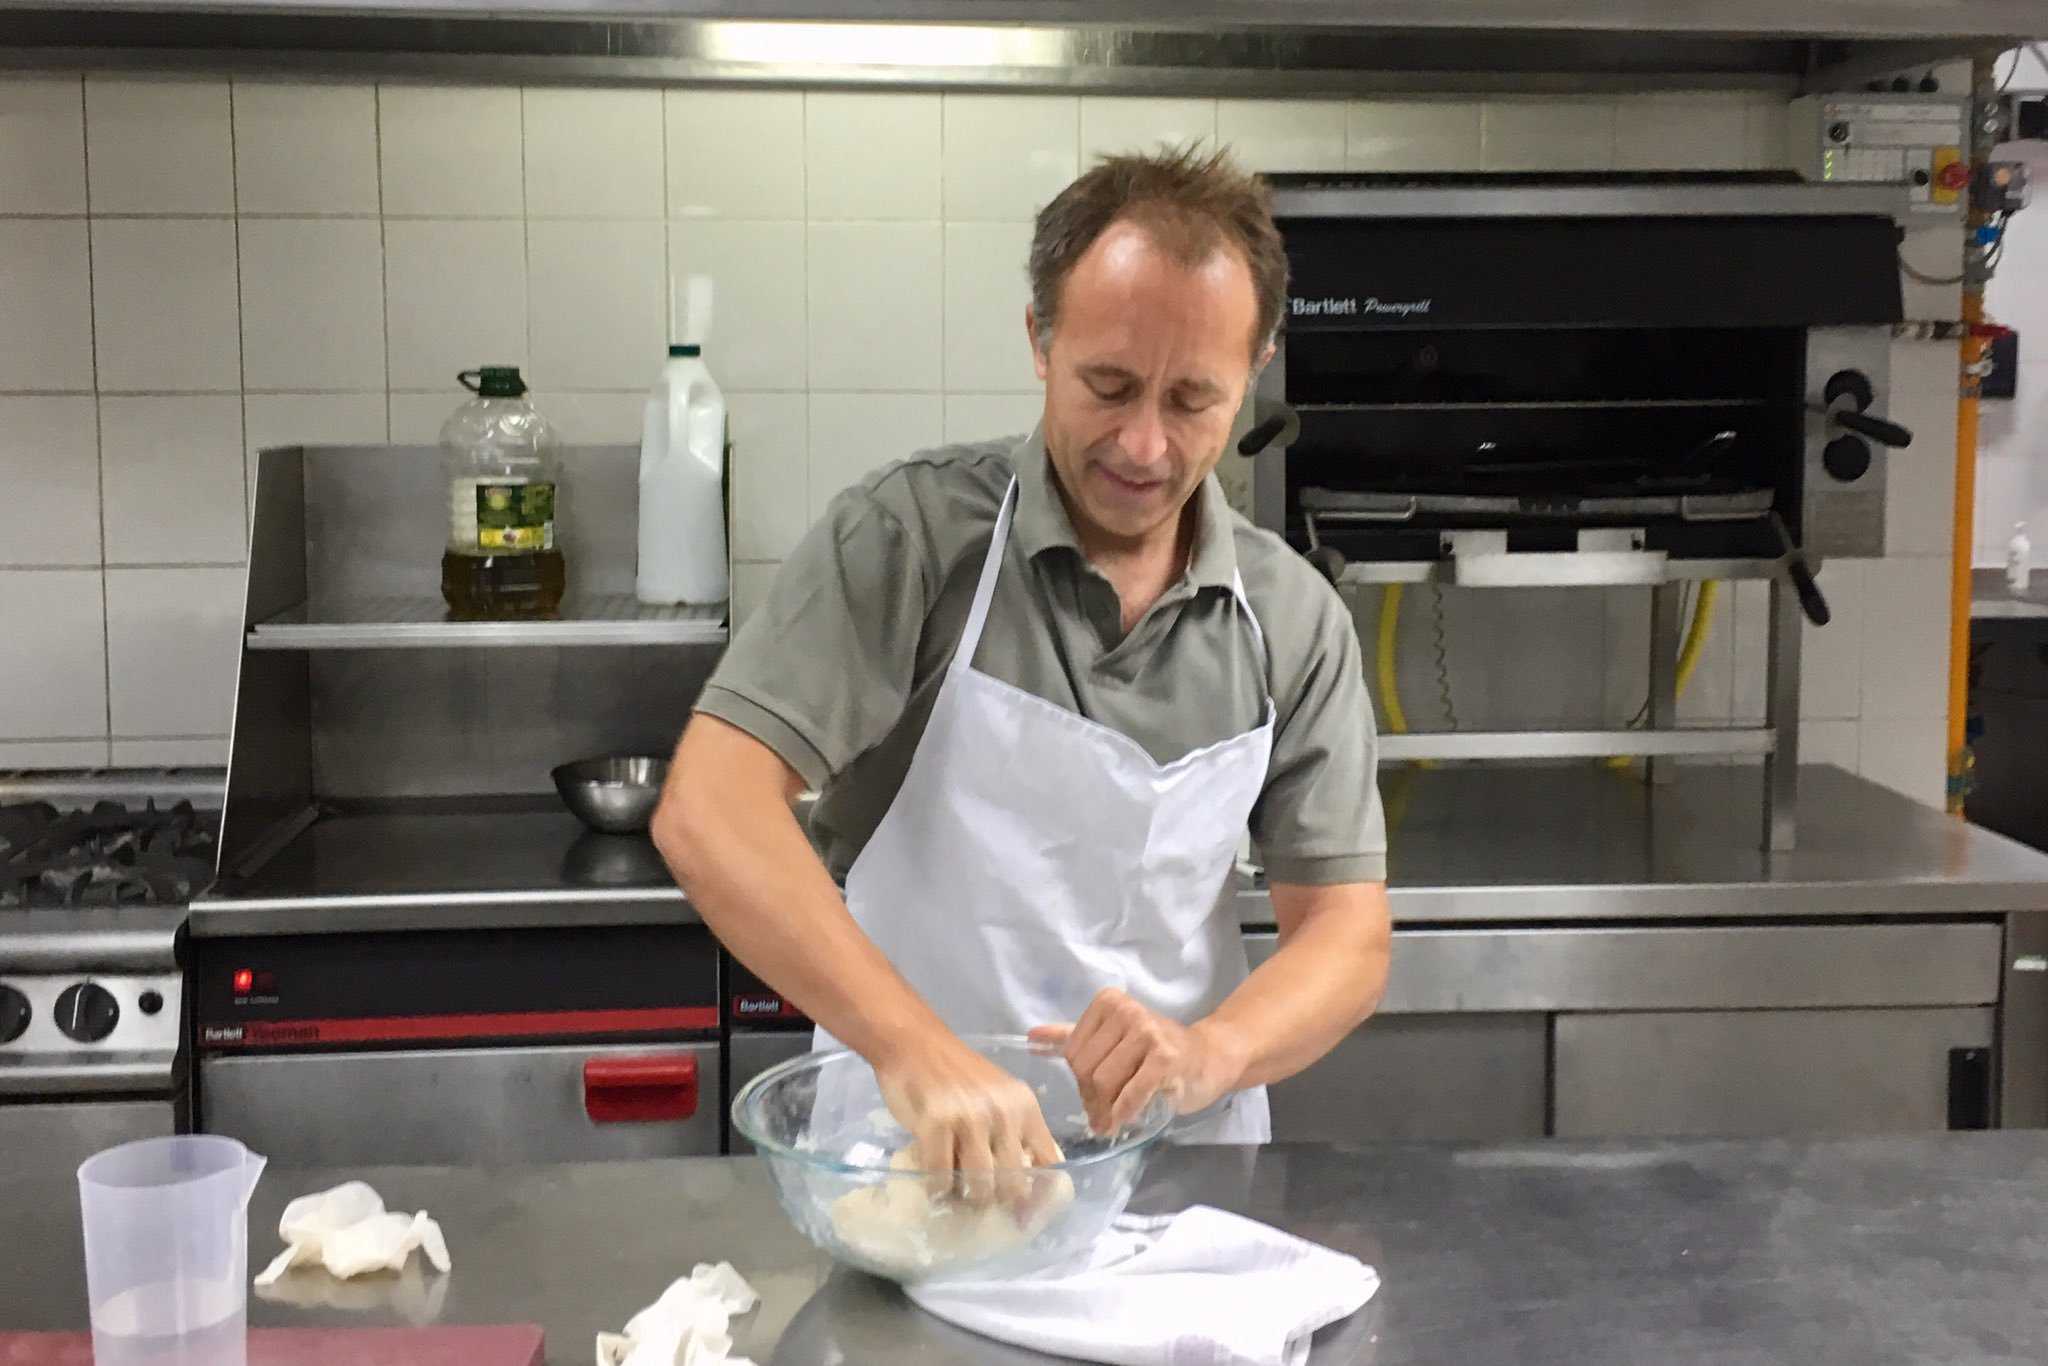 thomas drew learns how to make daal and roti in pakistan